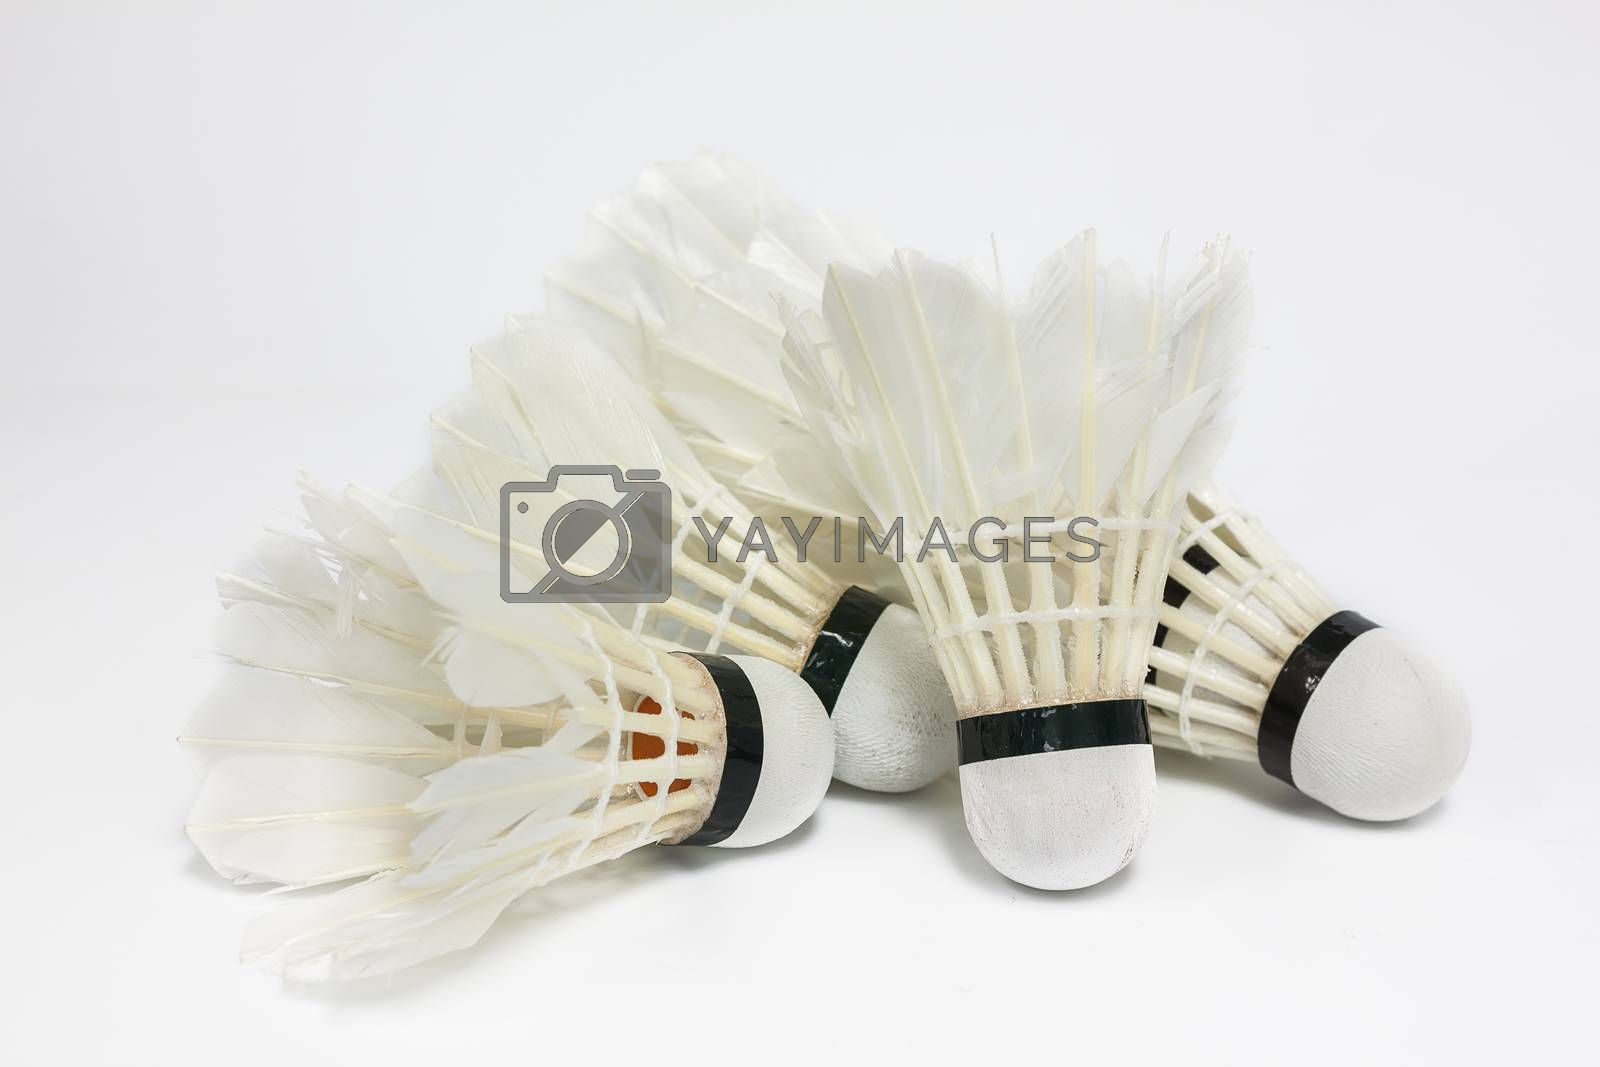 Royalty free image of Used shuttlecock by hadkhanong